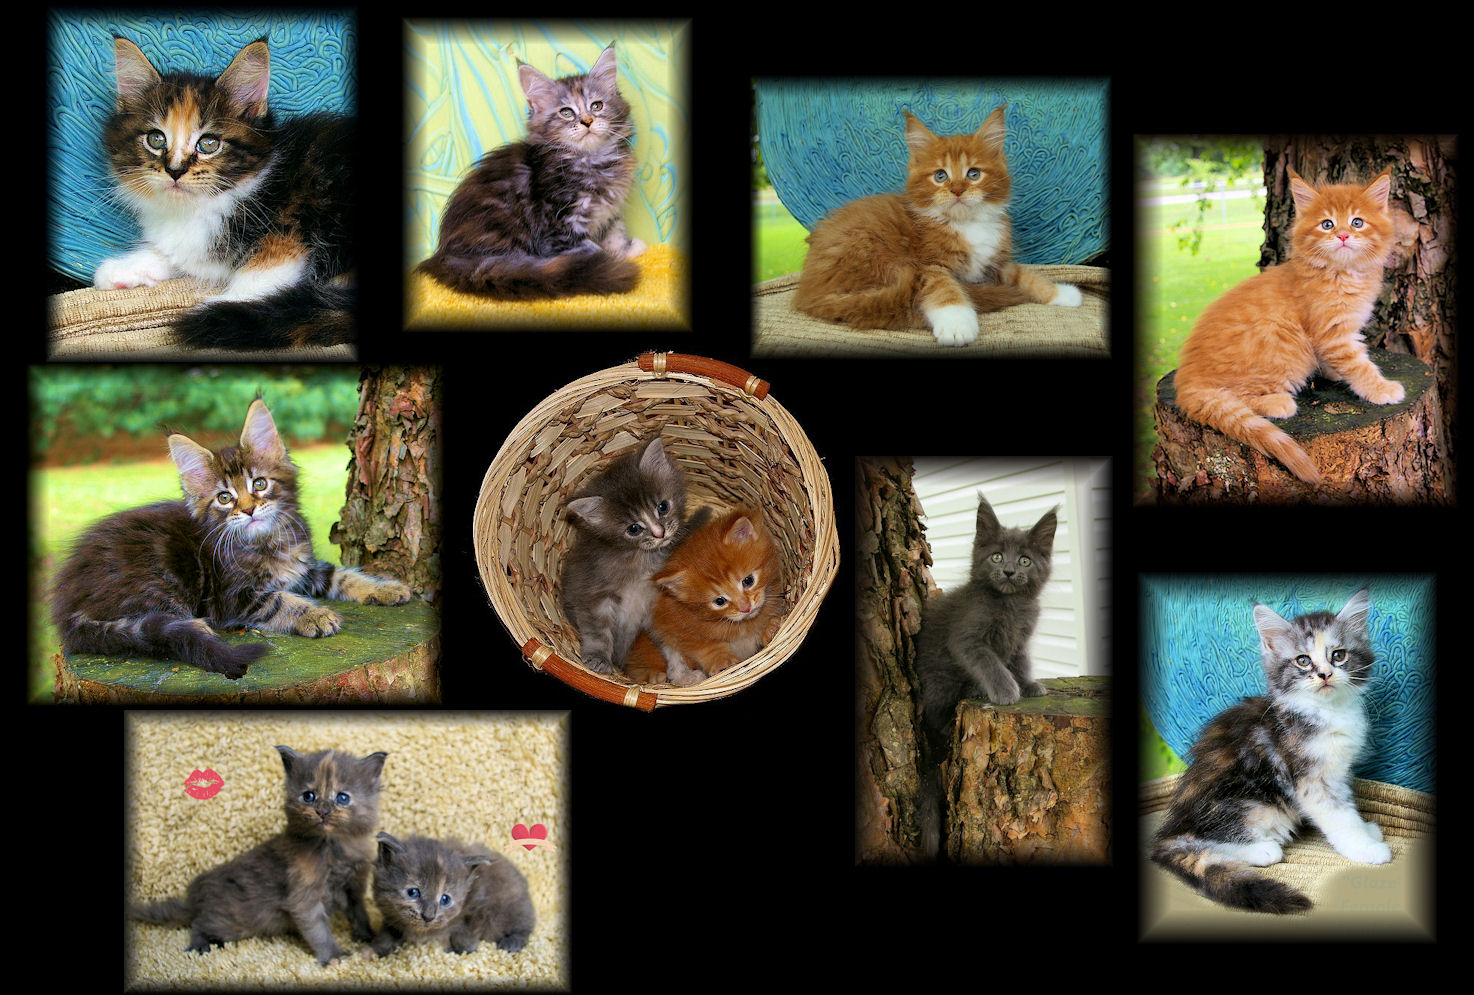 pictures of maine coon kittens from congocoon cattery